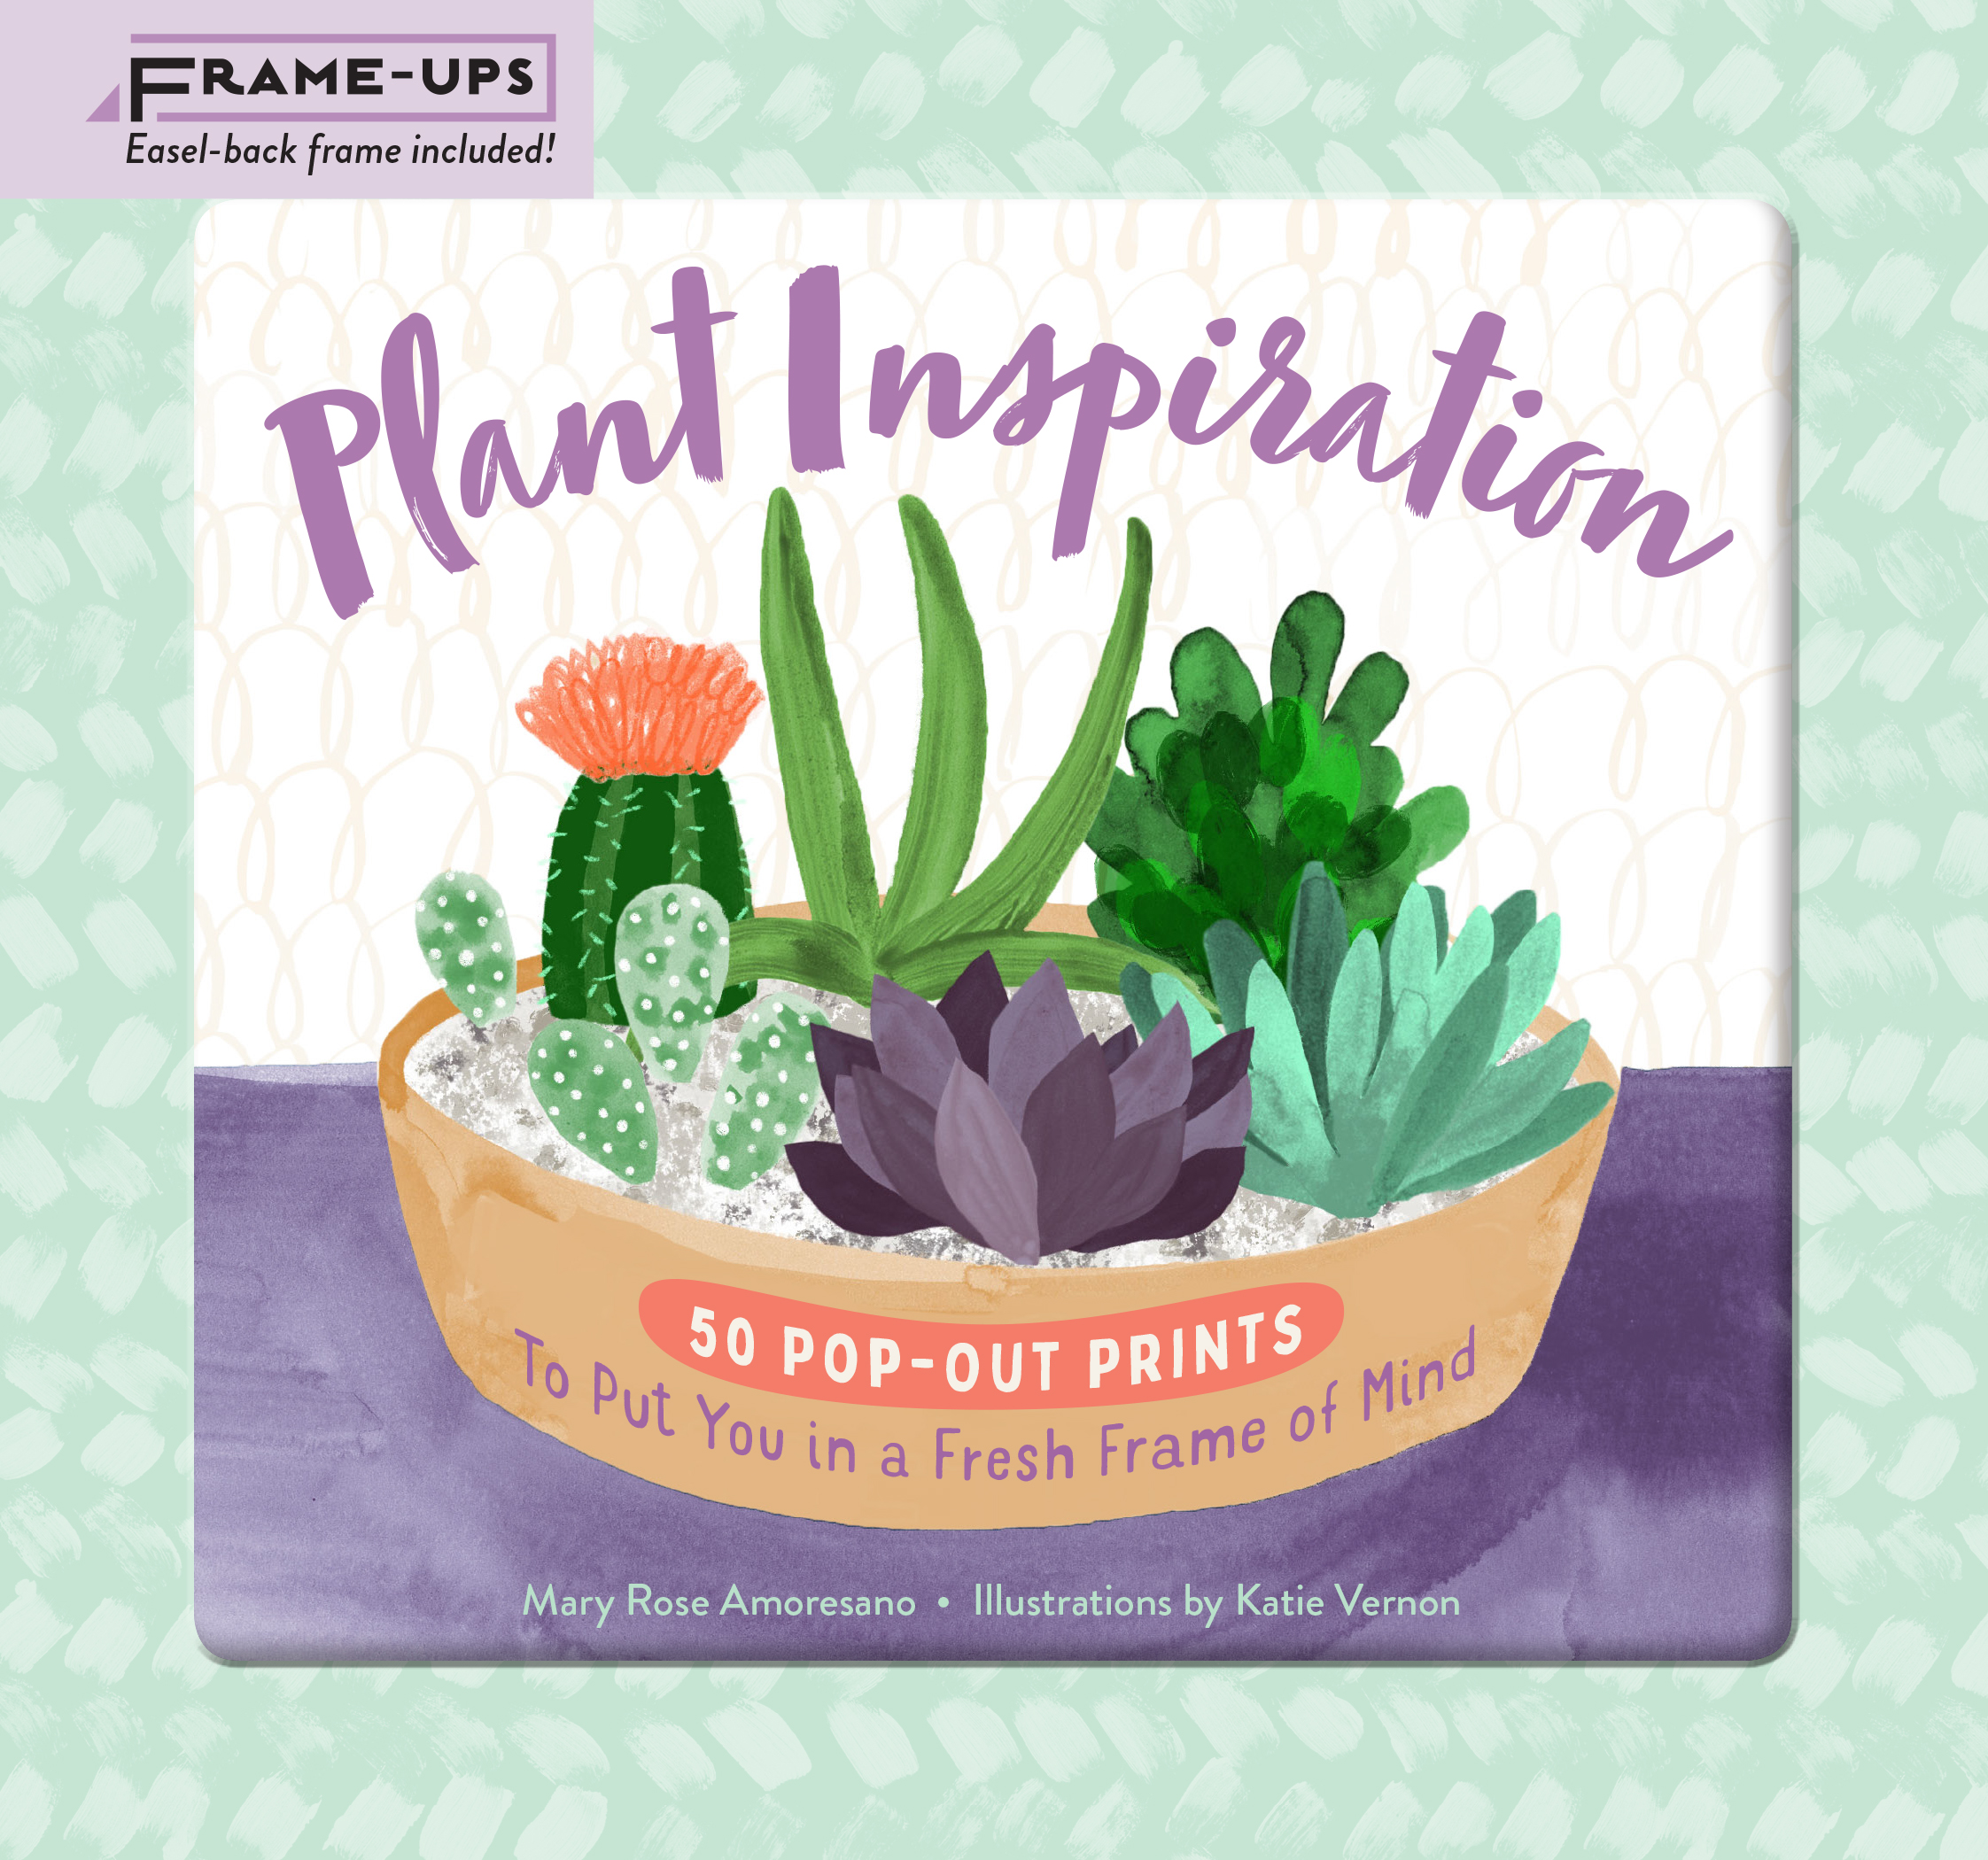 Plant Inspiration Frame-Ups 50 Pop-Out Prints to Put You in a Fresh Frame of Mind - Mary Rose Amoresano